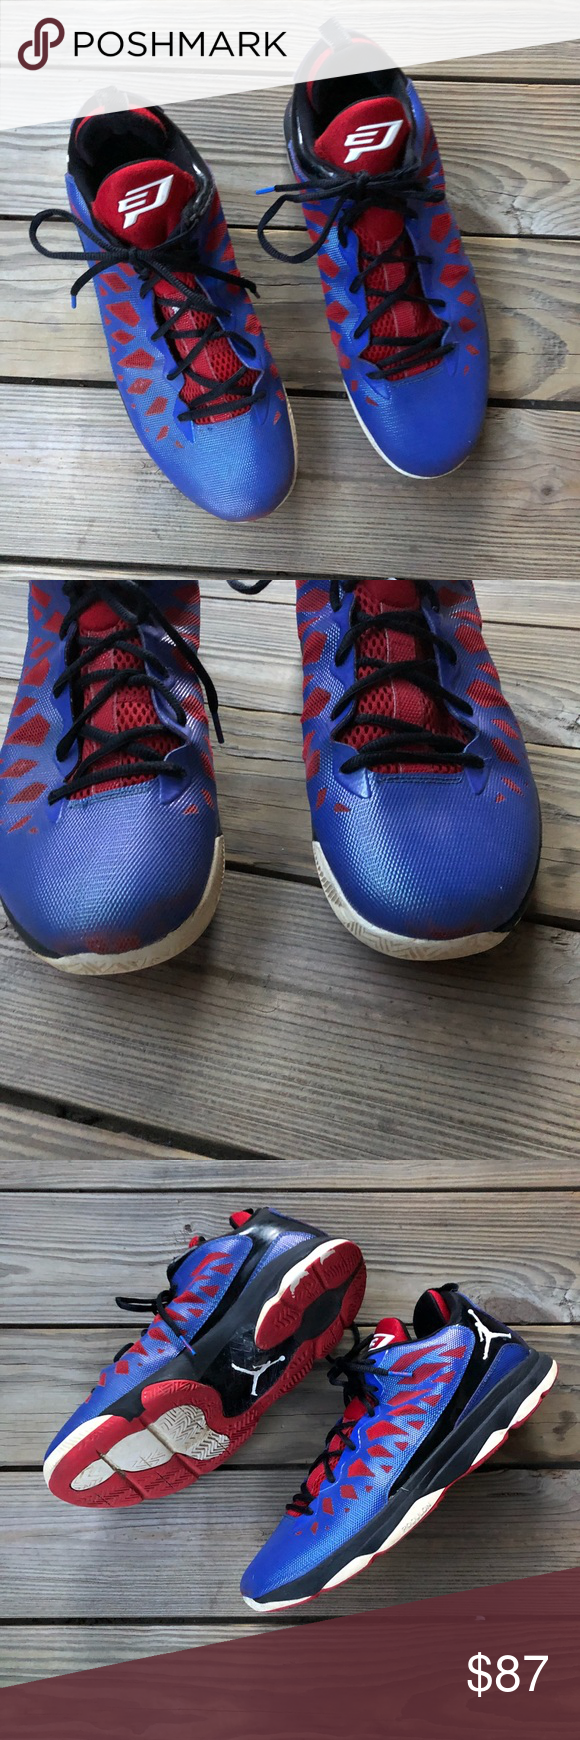 new concept cc3f4 25596 Nike Jordan CP3 VI 6 Game Royal Blue Gym Red Sz 12 Nike Jordan CP3 VI 6  Game Royal Blue Gym Red White Black Sz 12 No removable insoles Great  condition ...